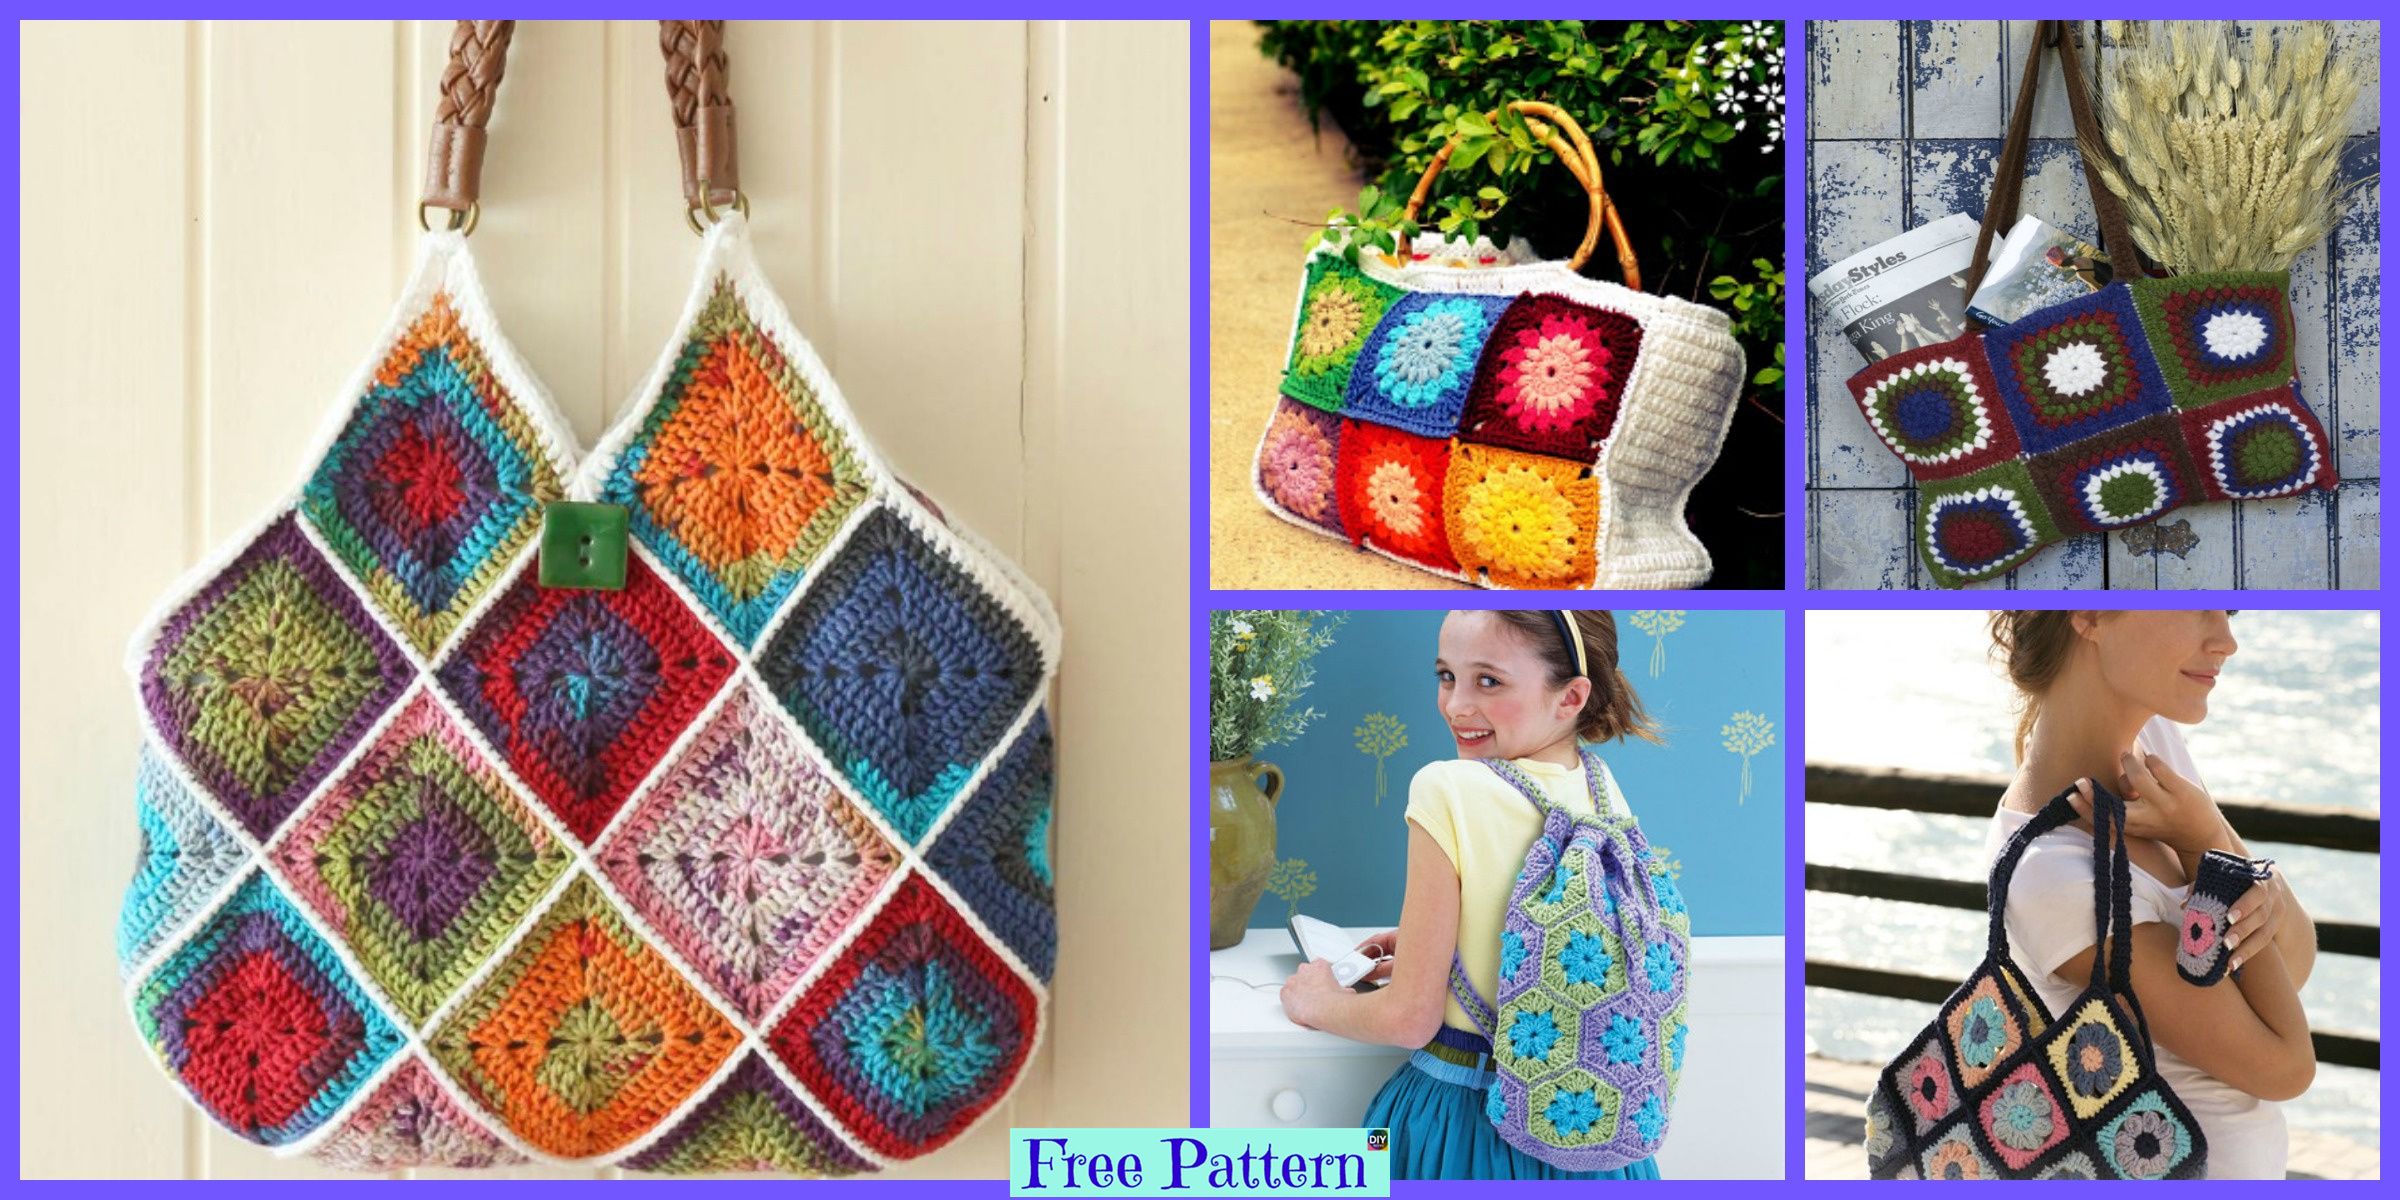 12 Best Crochet Square Bag Free Patterns